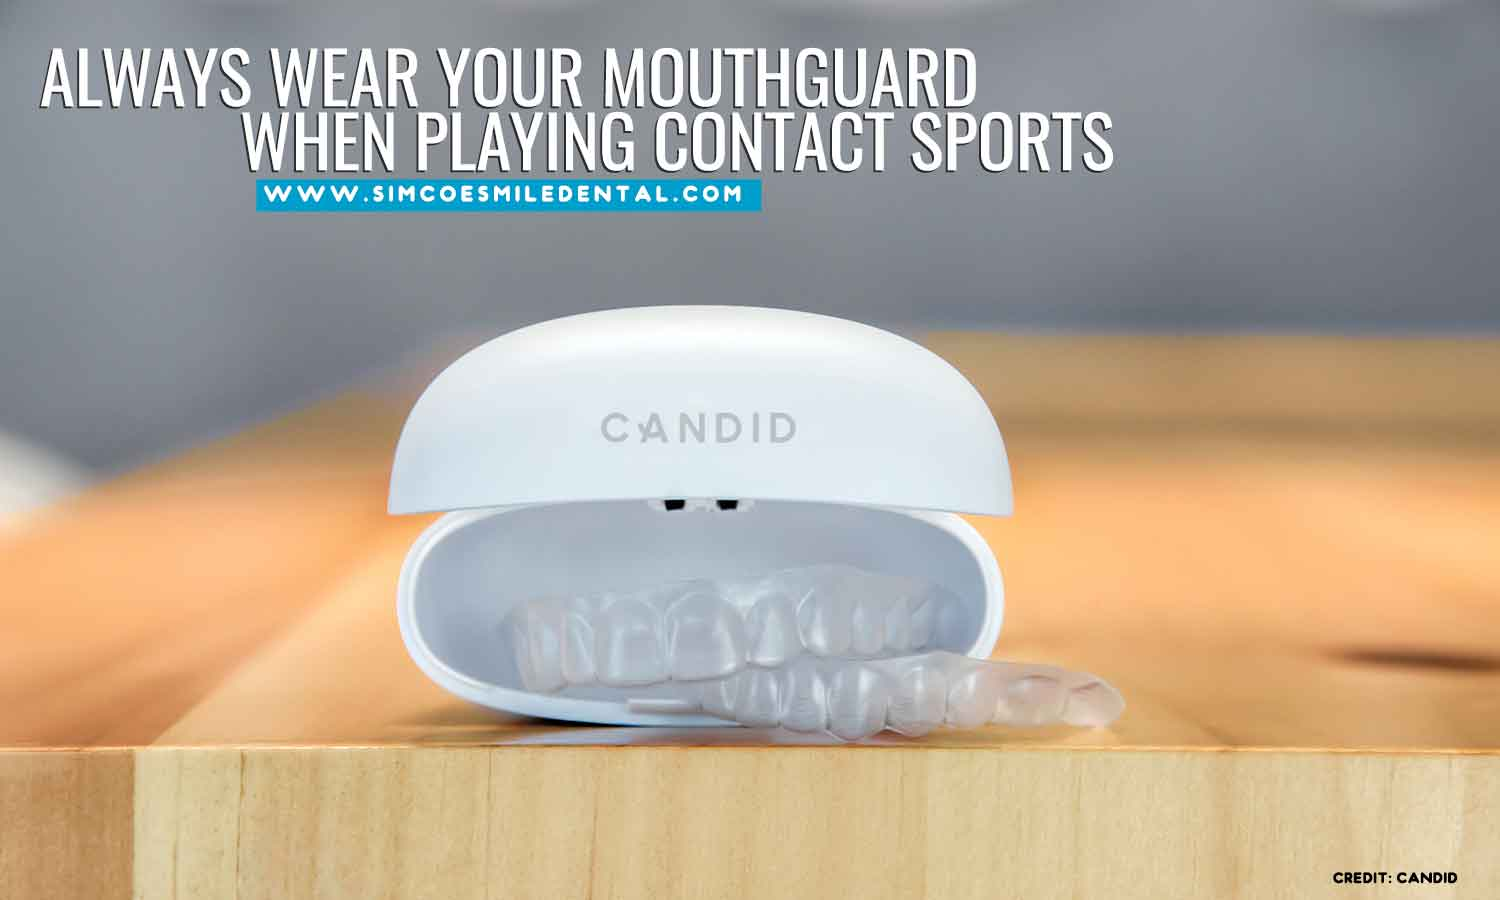 Always-wear-your-mouthguard-when-playing-contact-sports 9 Unexpectedly Bad Habits That Can Hurt Your Teeth